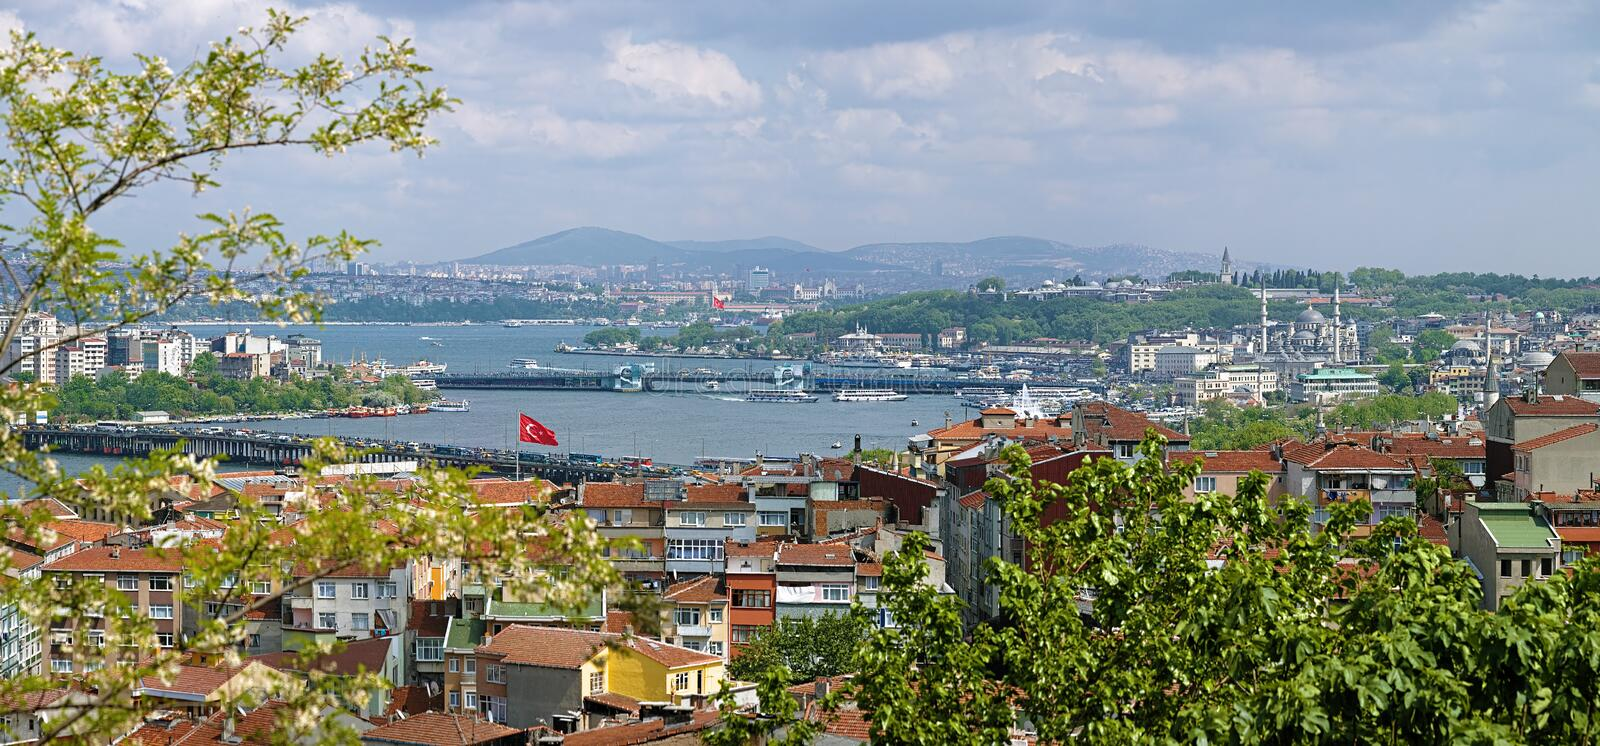 View of Istanbul and Golden Horn Estuary, Turkey. View of Istanbul and Golden Horn Estuary from the Yavuz Selim Mosque, Turkey stock photo